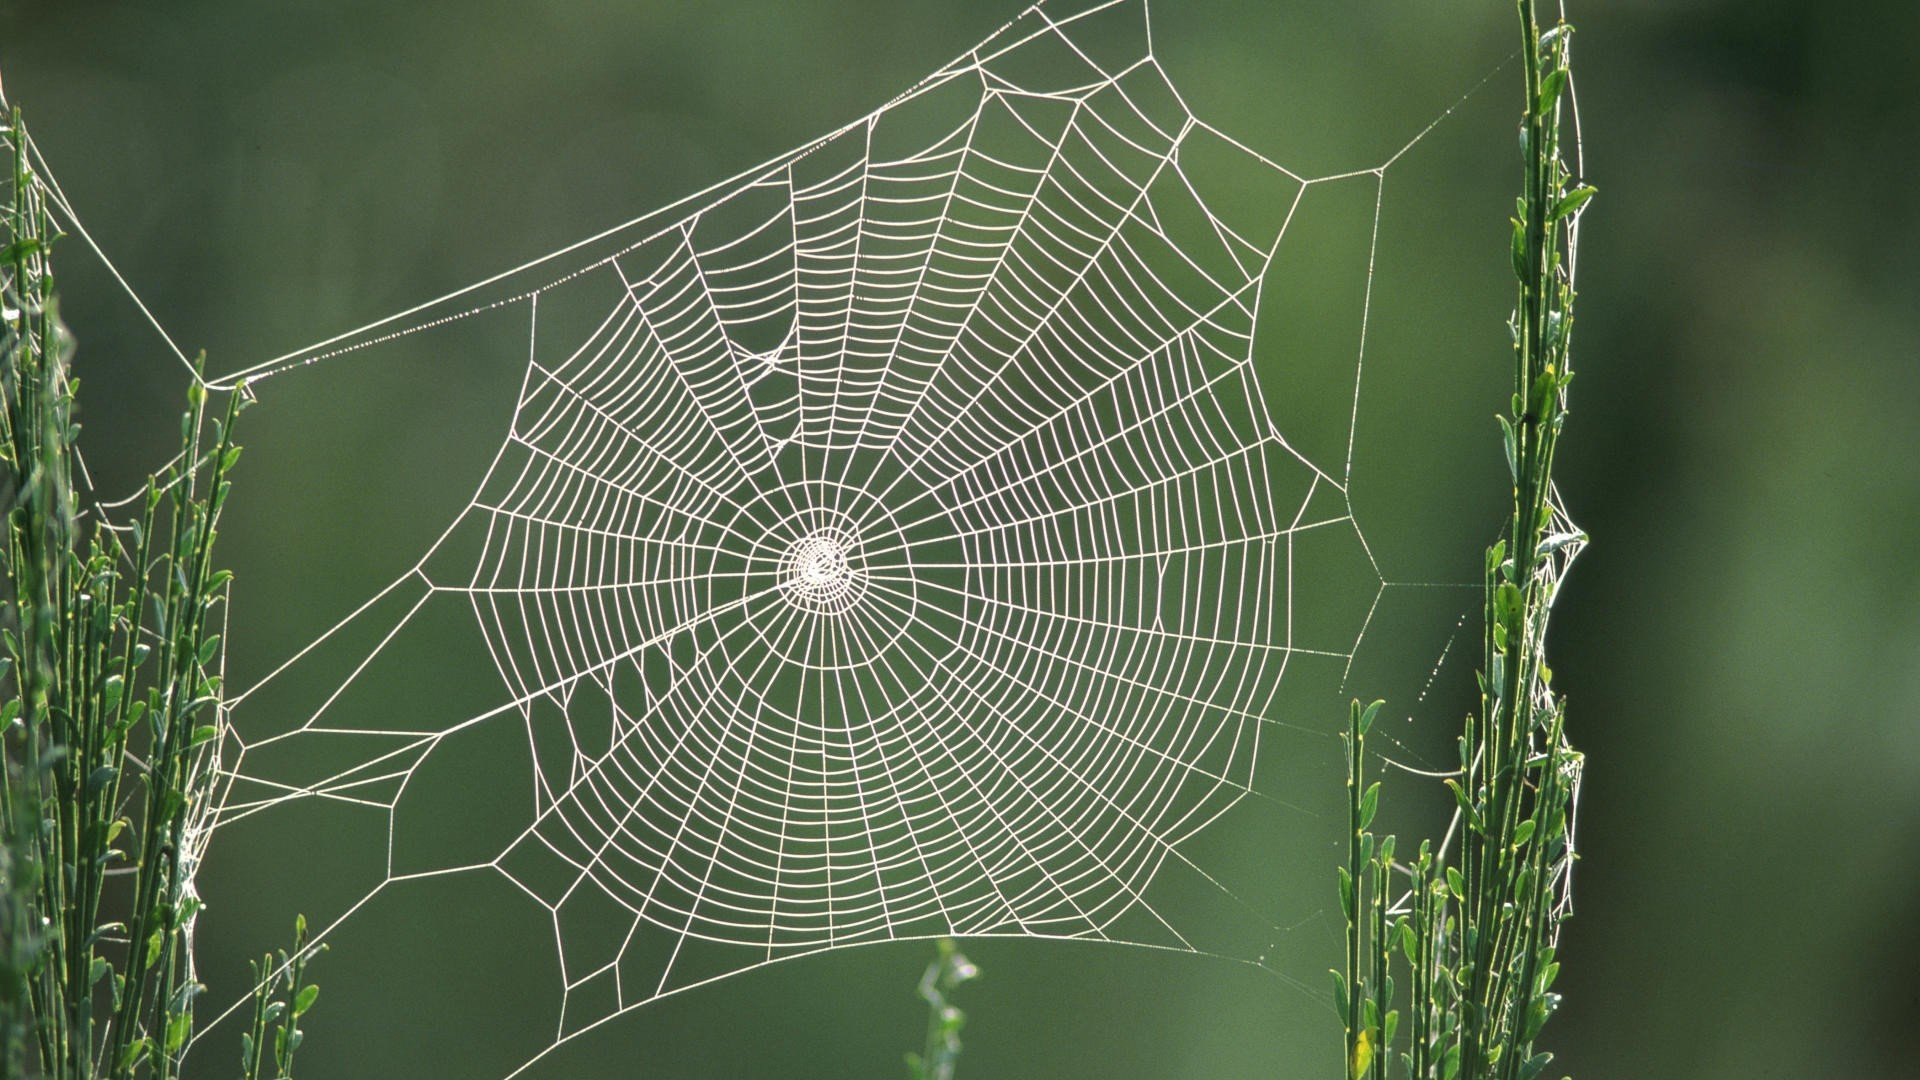 Download full hd Spider Web computer wallpaper ID:184772 for free